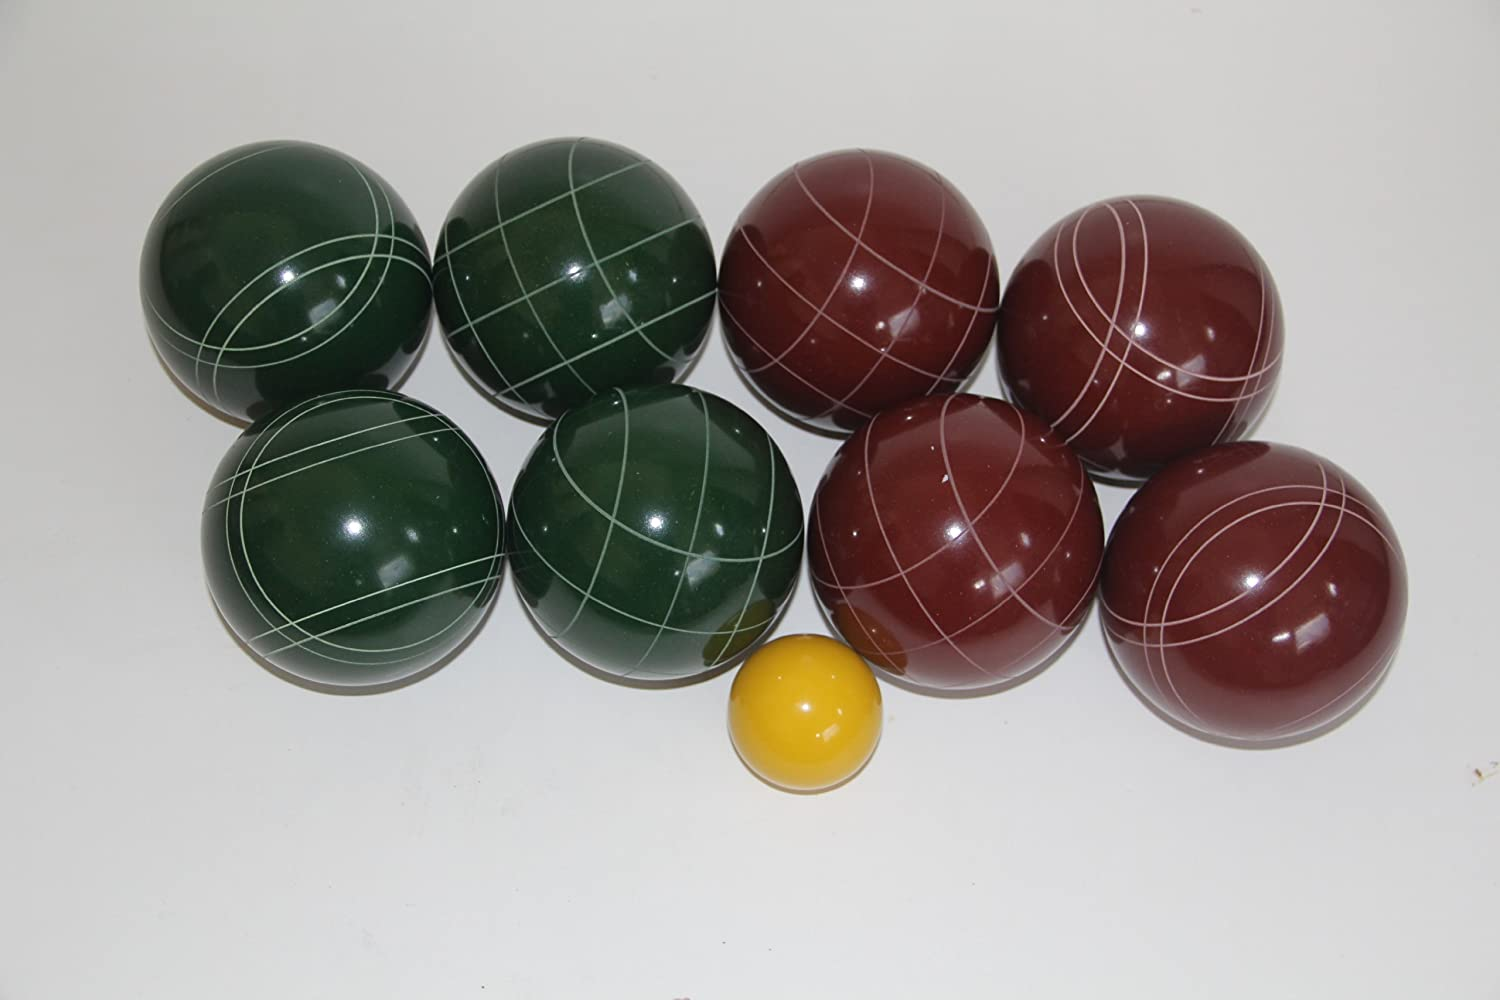 Premium Quality EPCO Tournament Bocce Set – 114mm Red and Green Bocce Balls -… jetzt kaufen